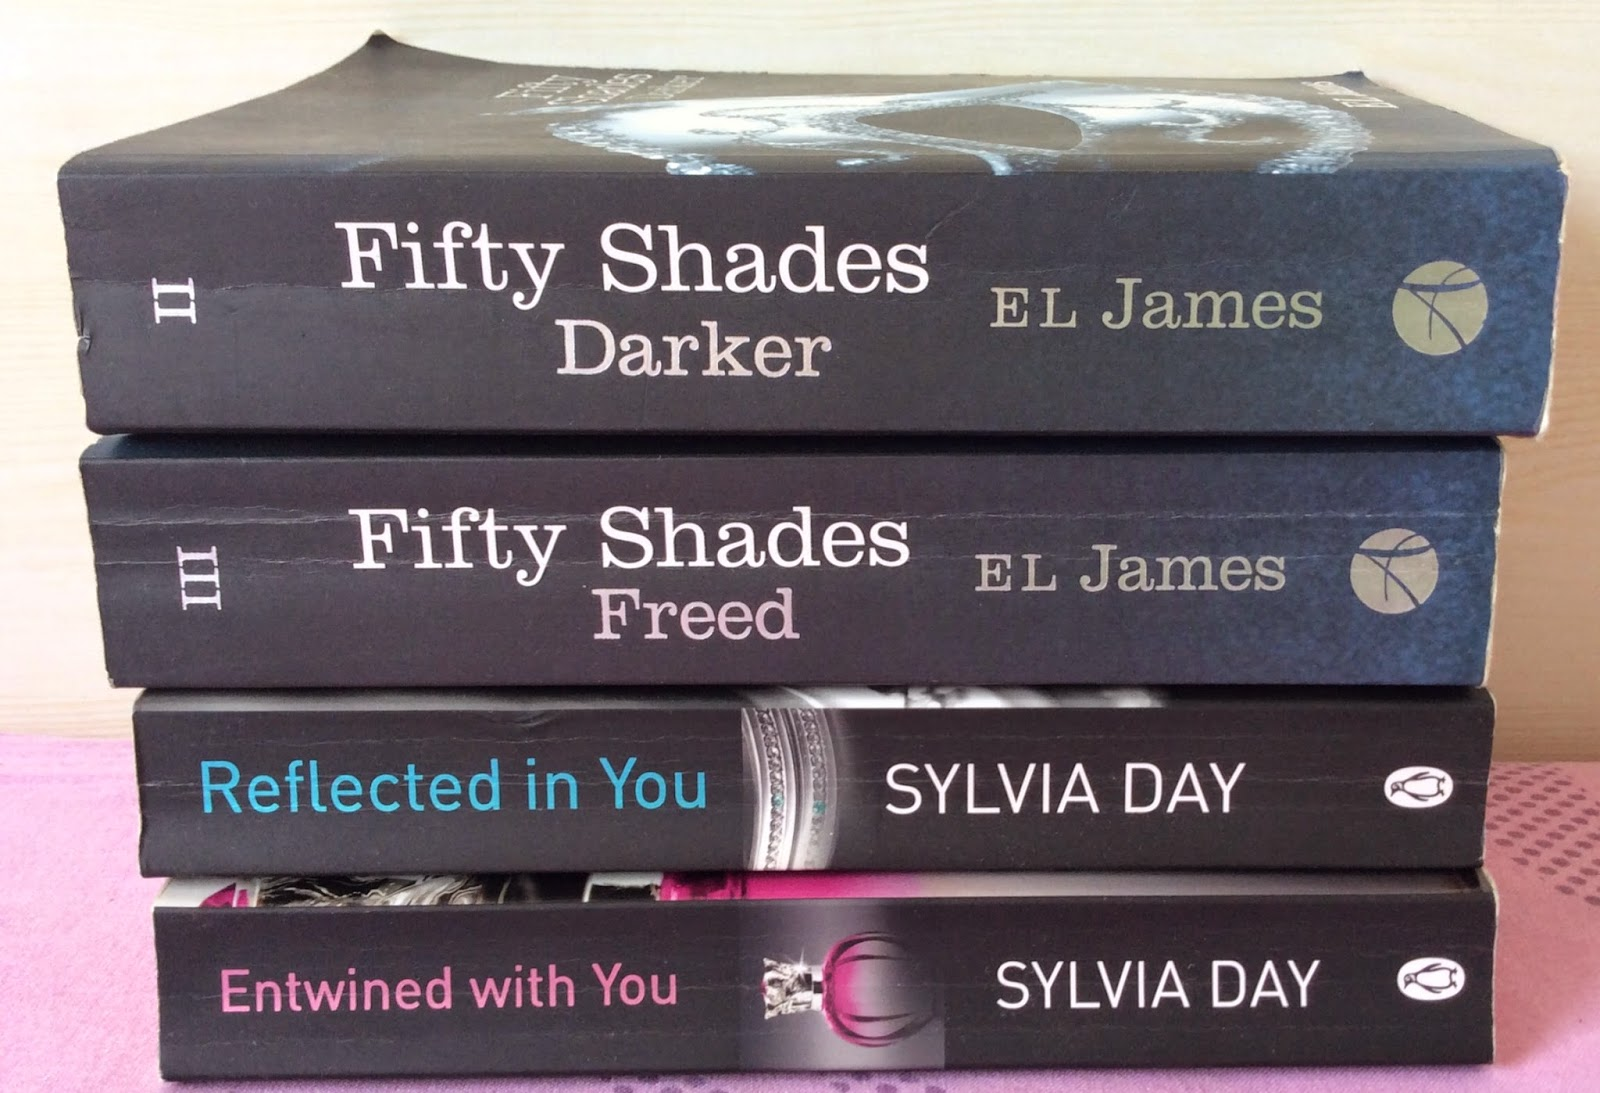 Adult fiction, fifty shades of grey, bared to you